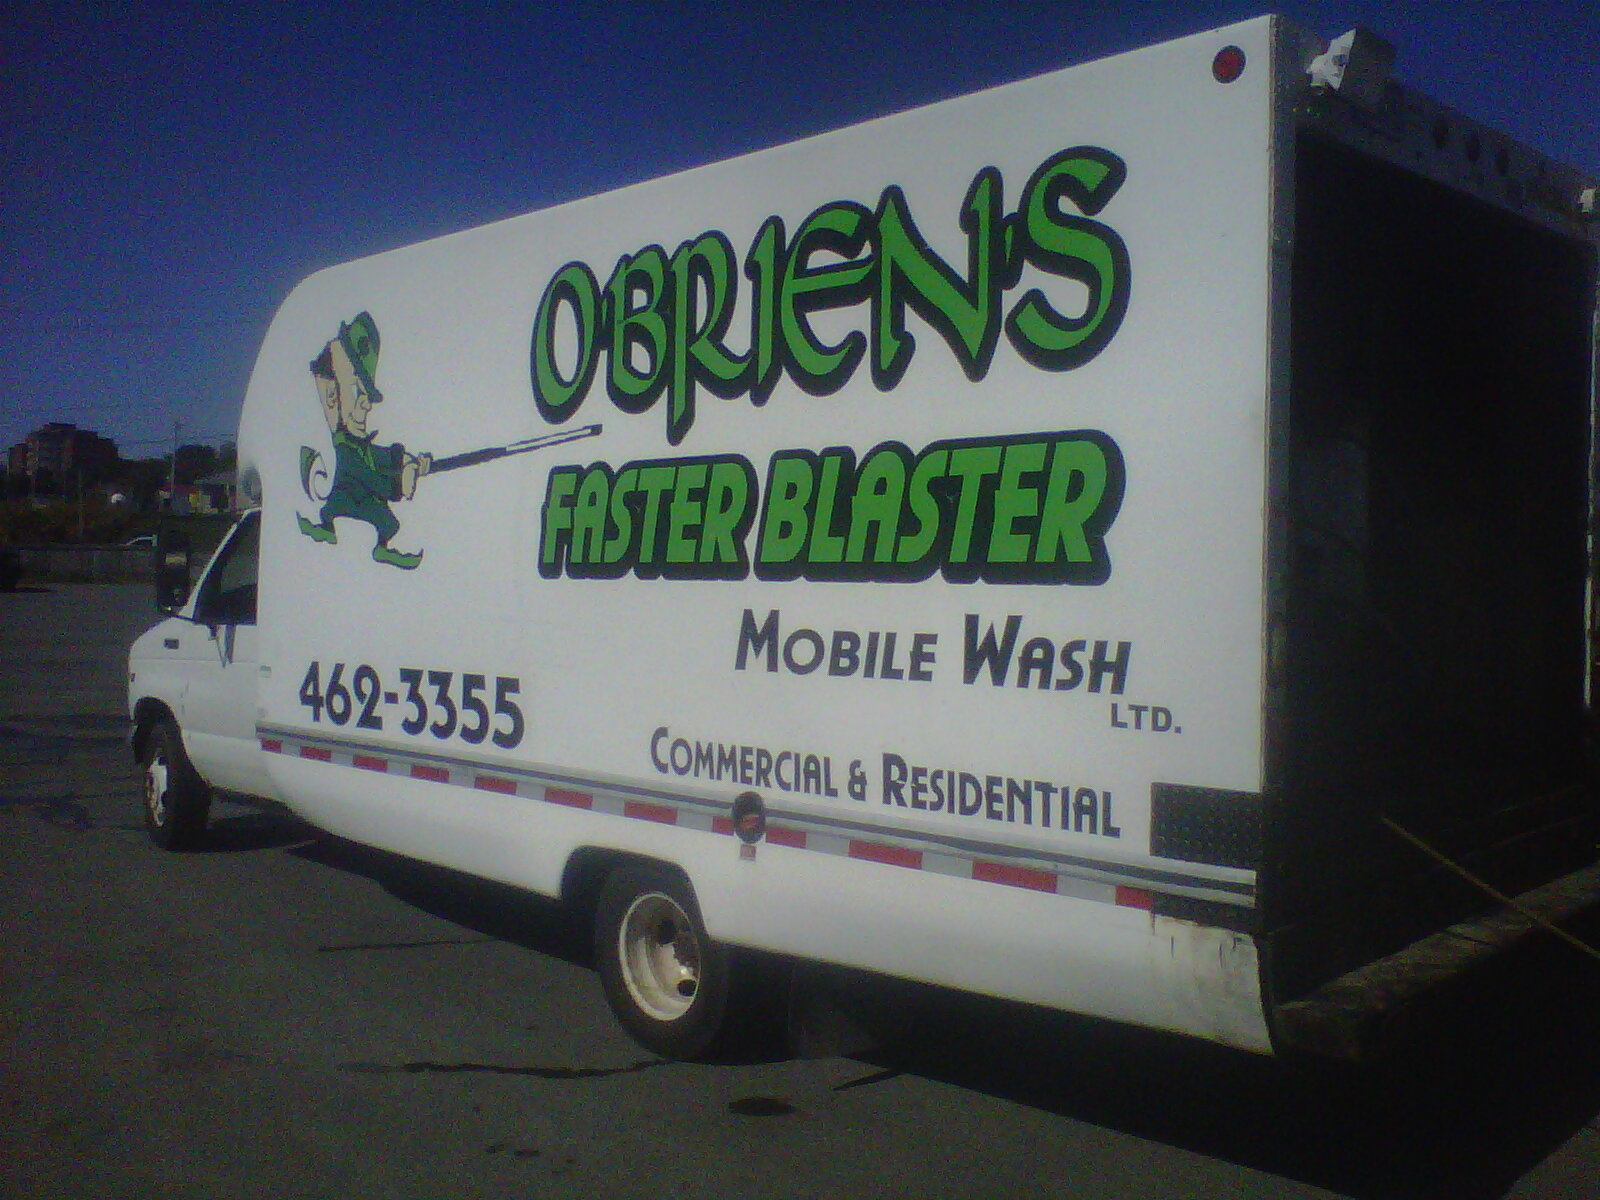 O'Brien's Faster Blaster Mobile Wash Limited